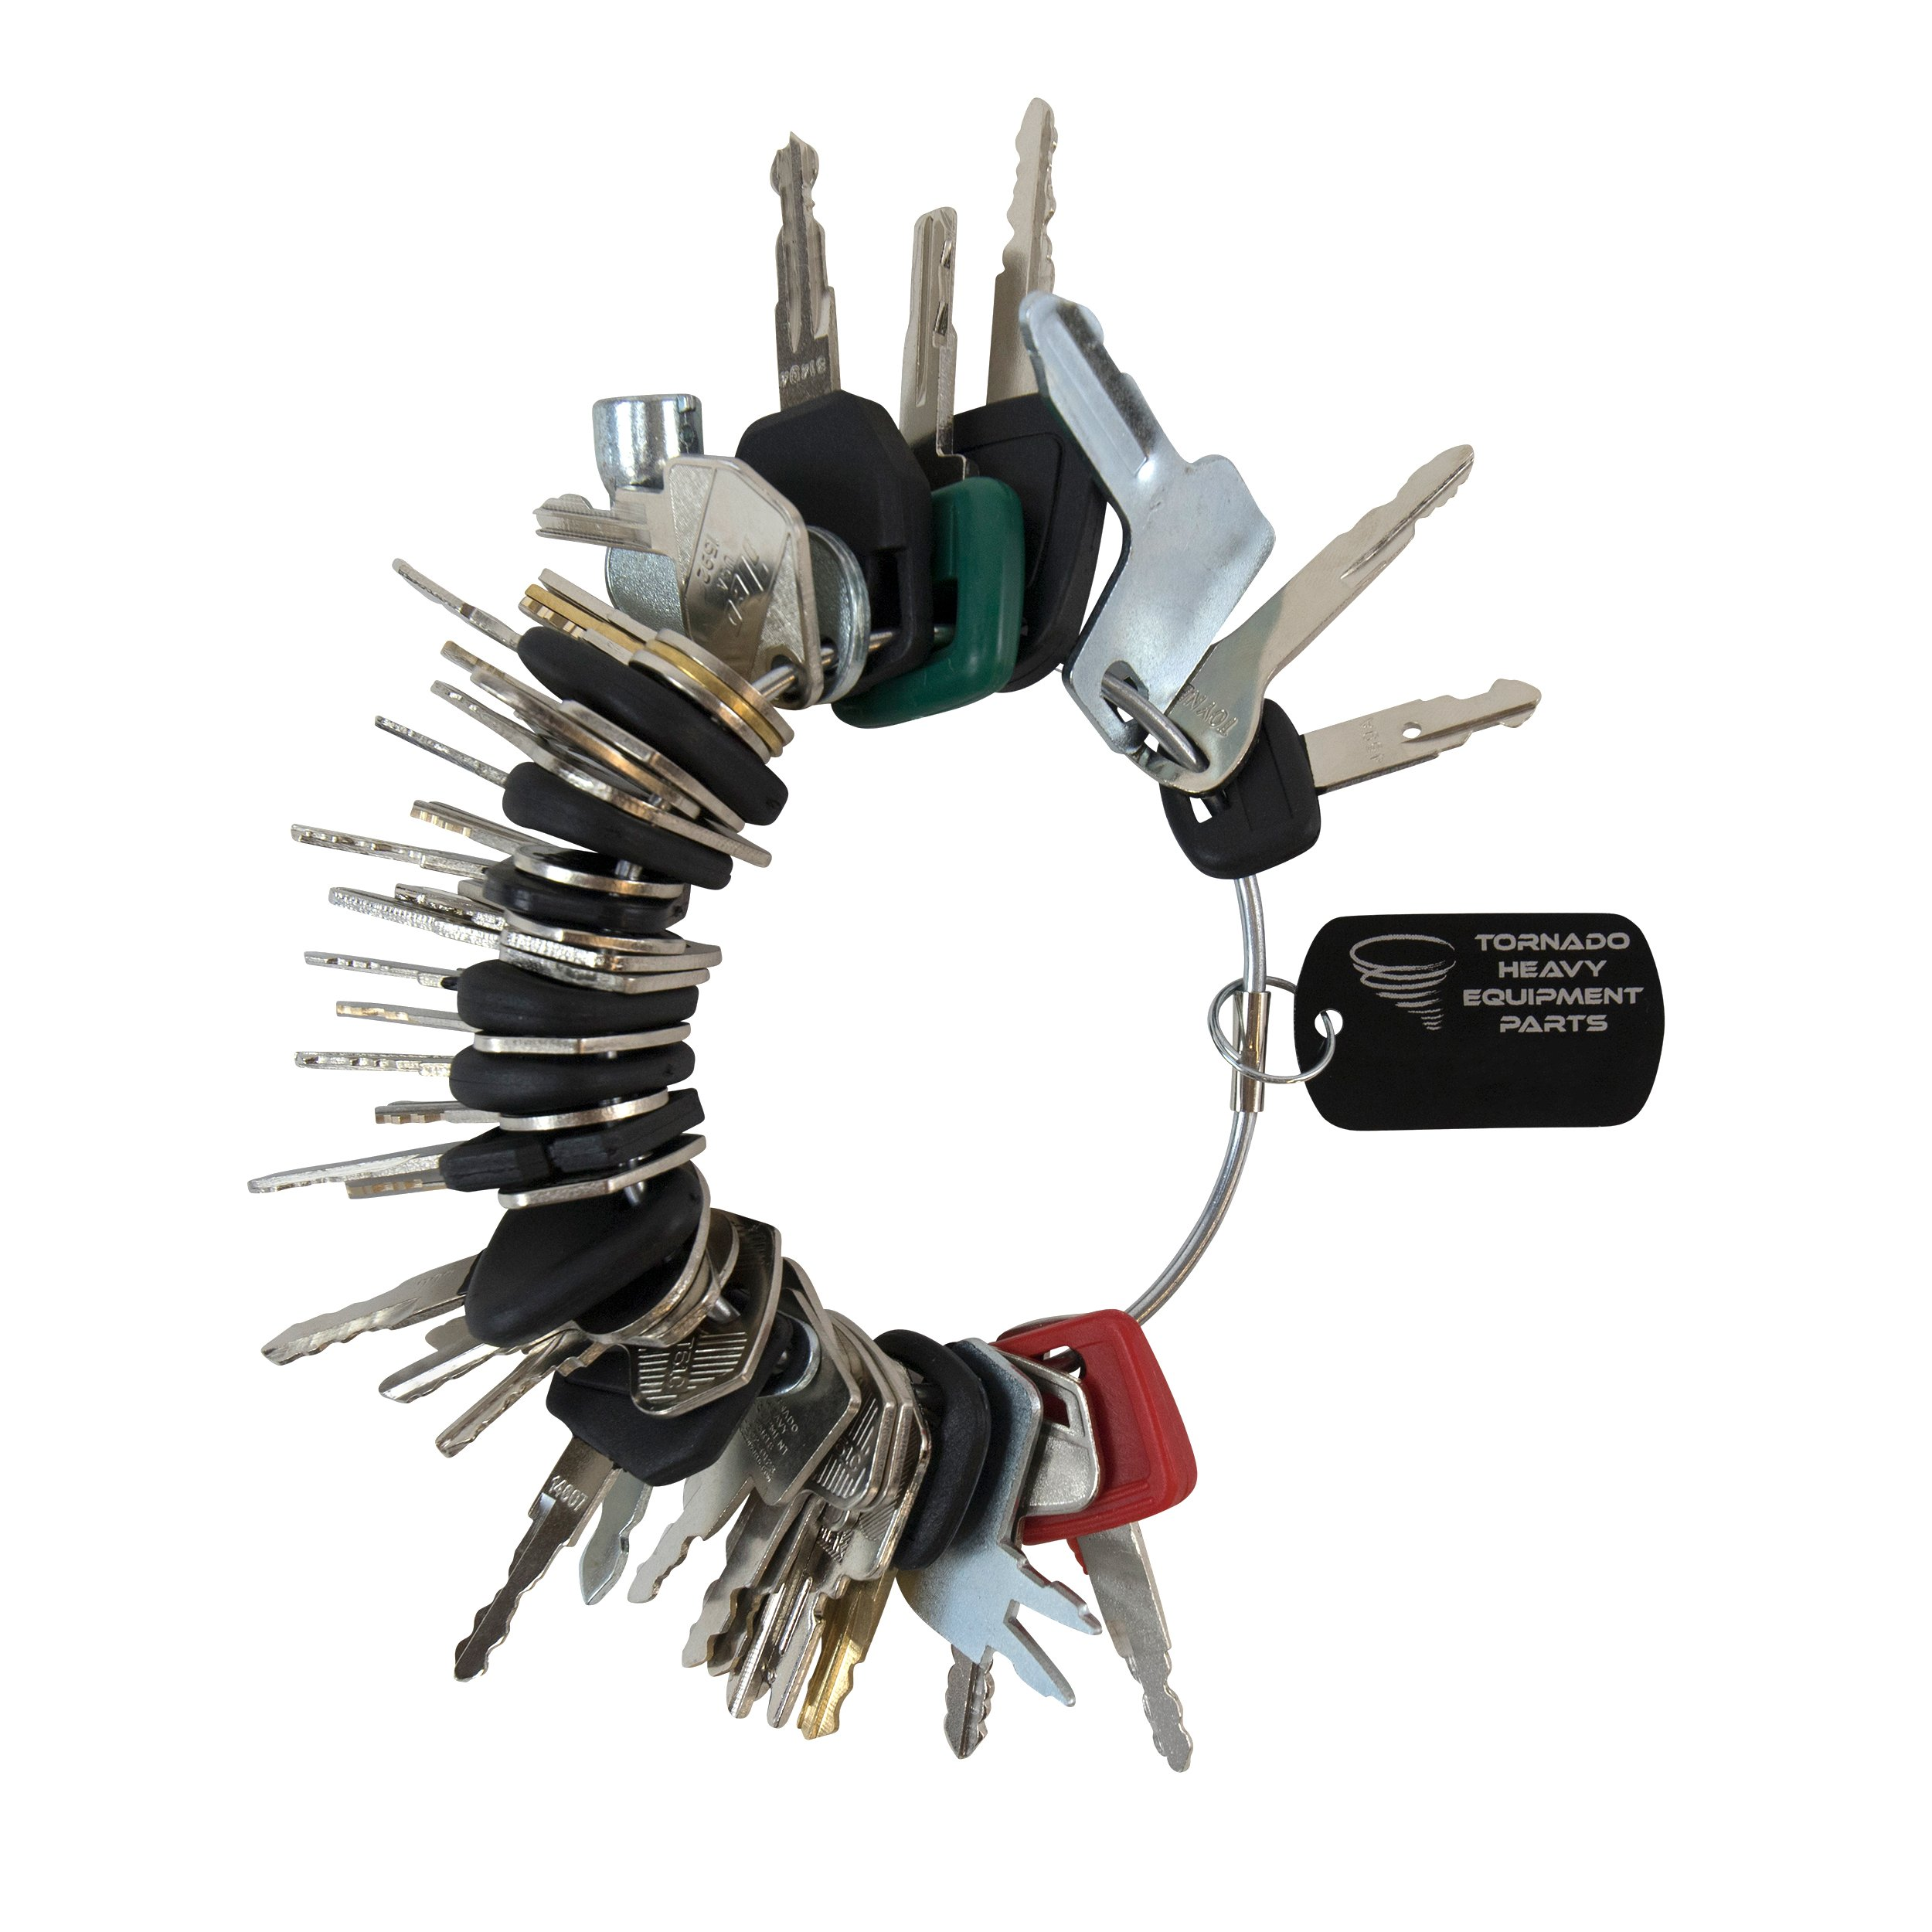 Construction Equipment Master Keys Set-Ignition Key Ring for Heavy Machines, 45 Key Set